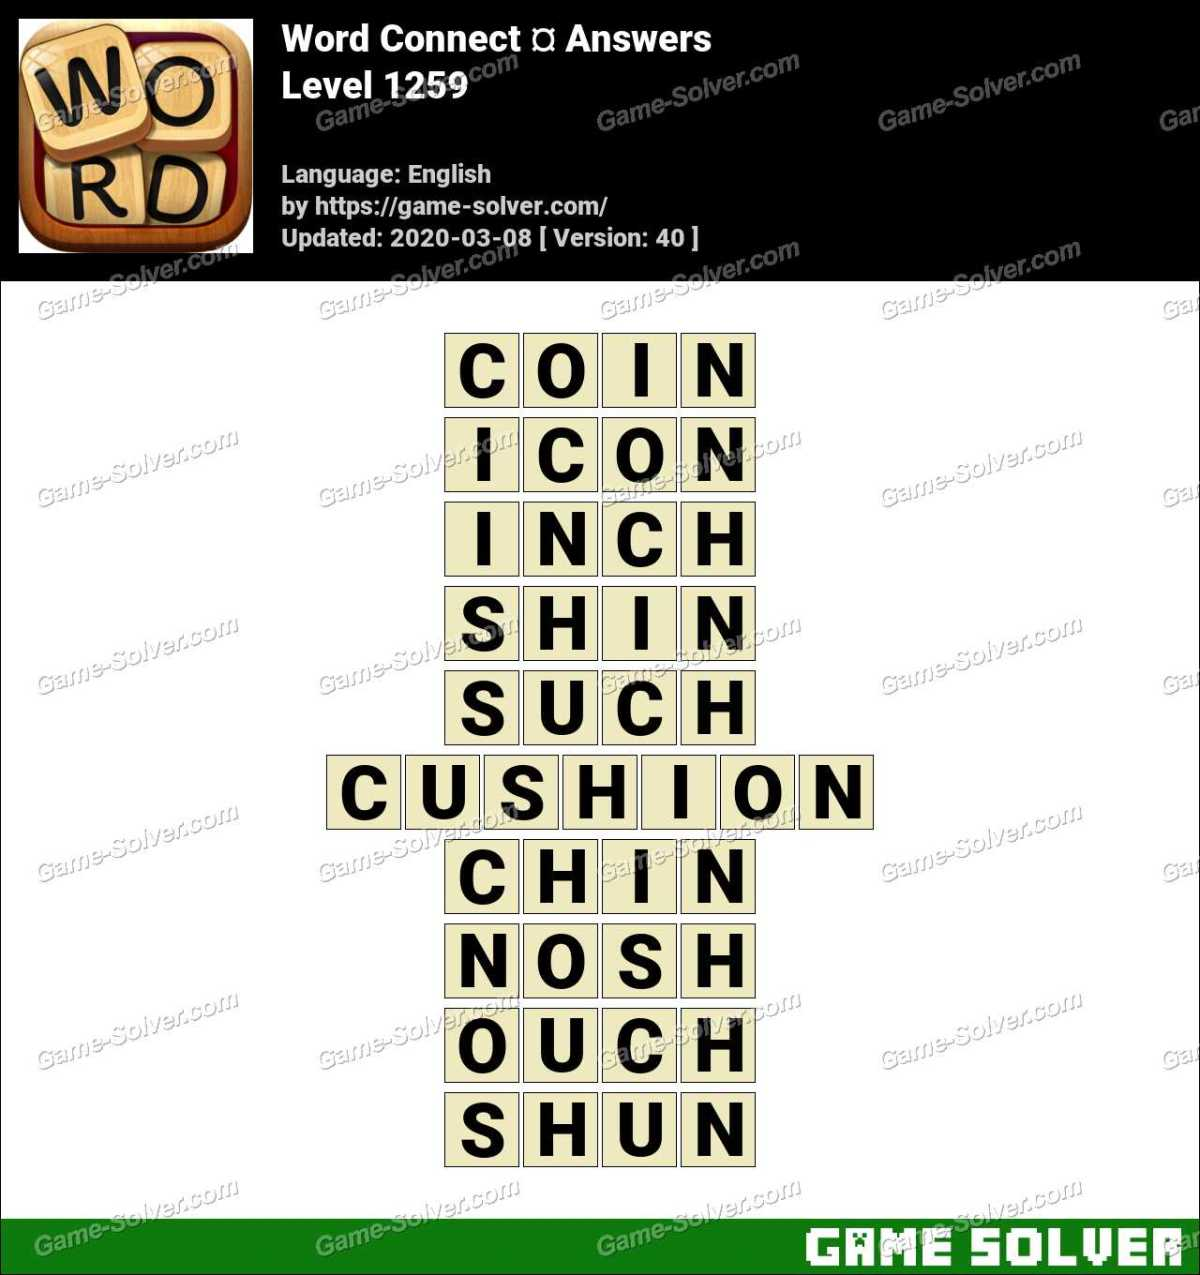 Word Connect Level 1259 Answers